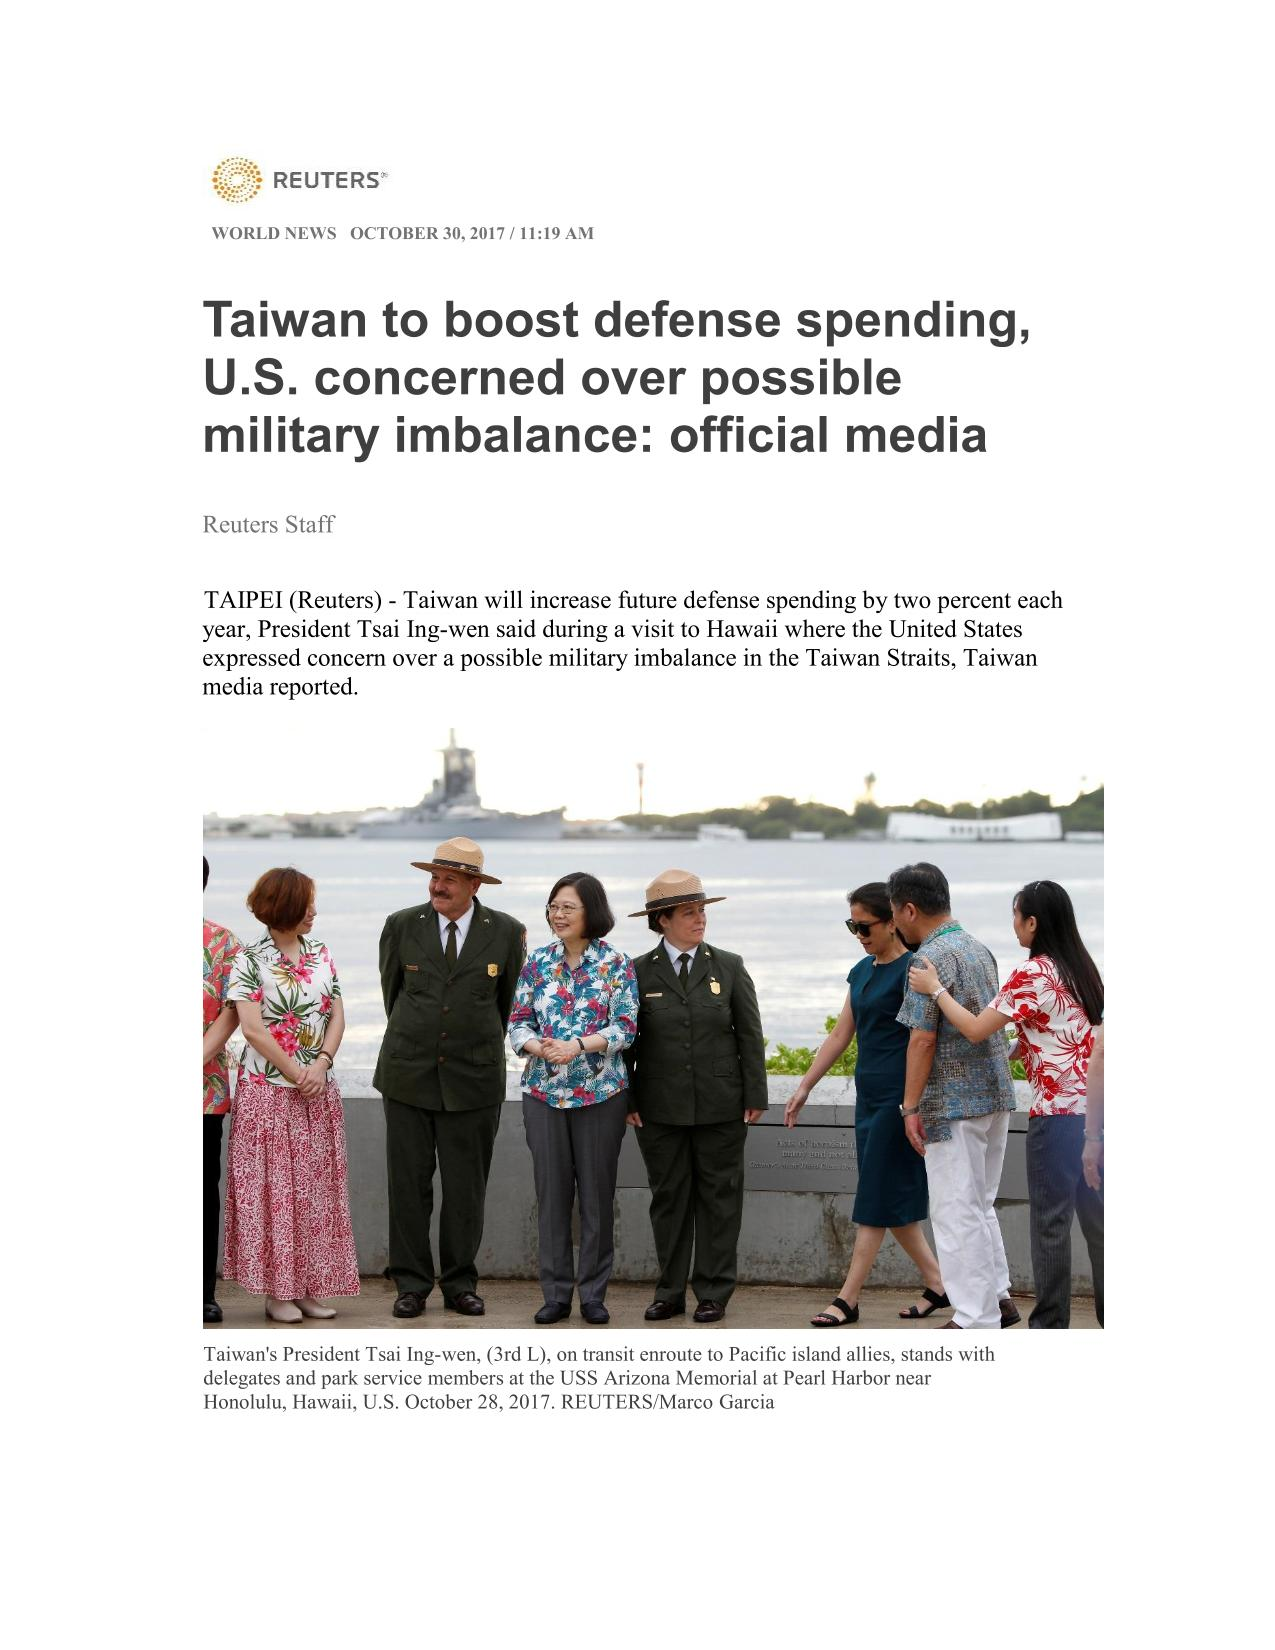 Taiwan to boost defense spending, U.S. concerned over possible military imbalance: official media